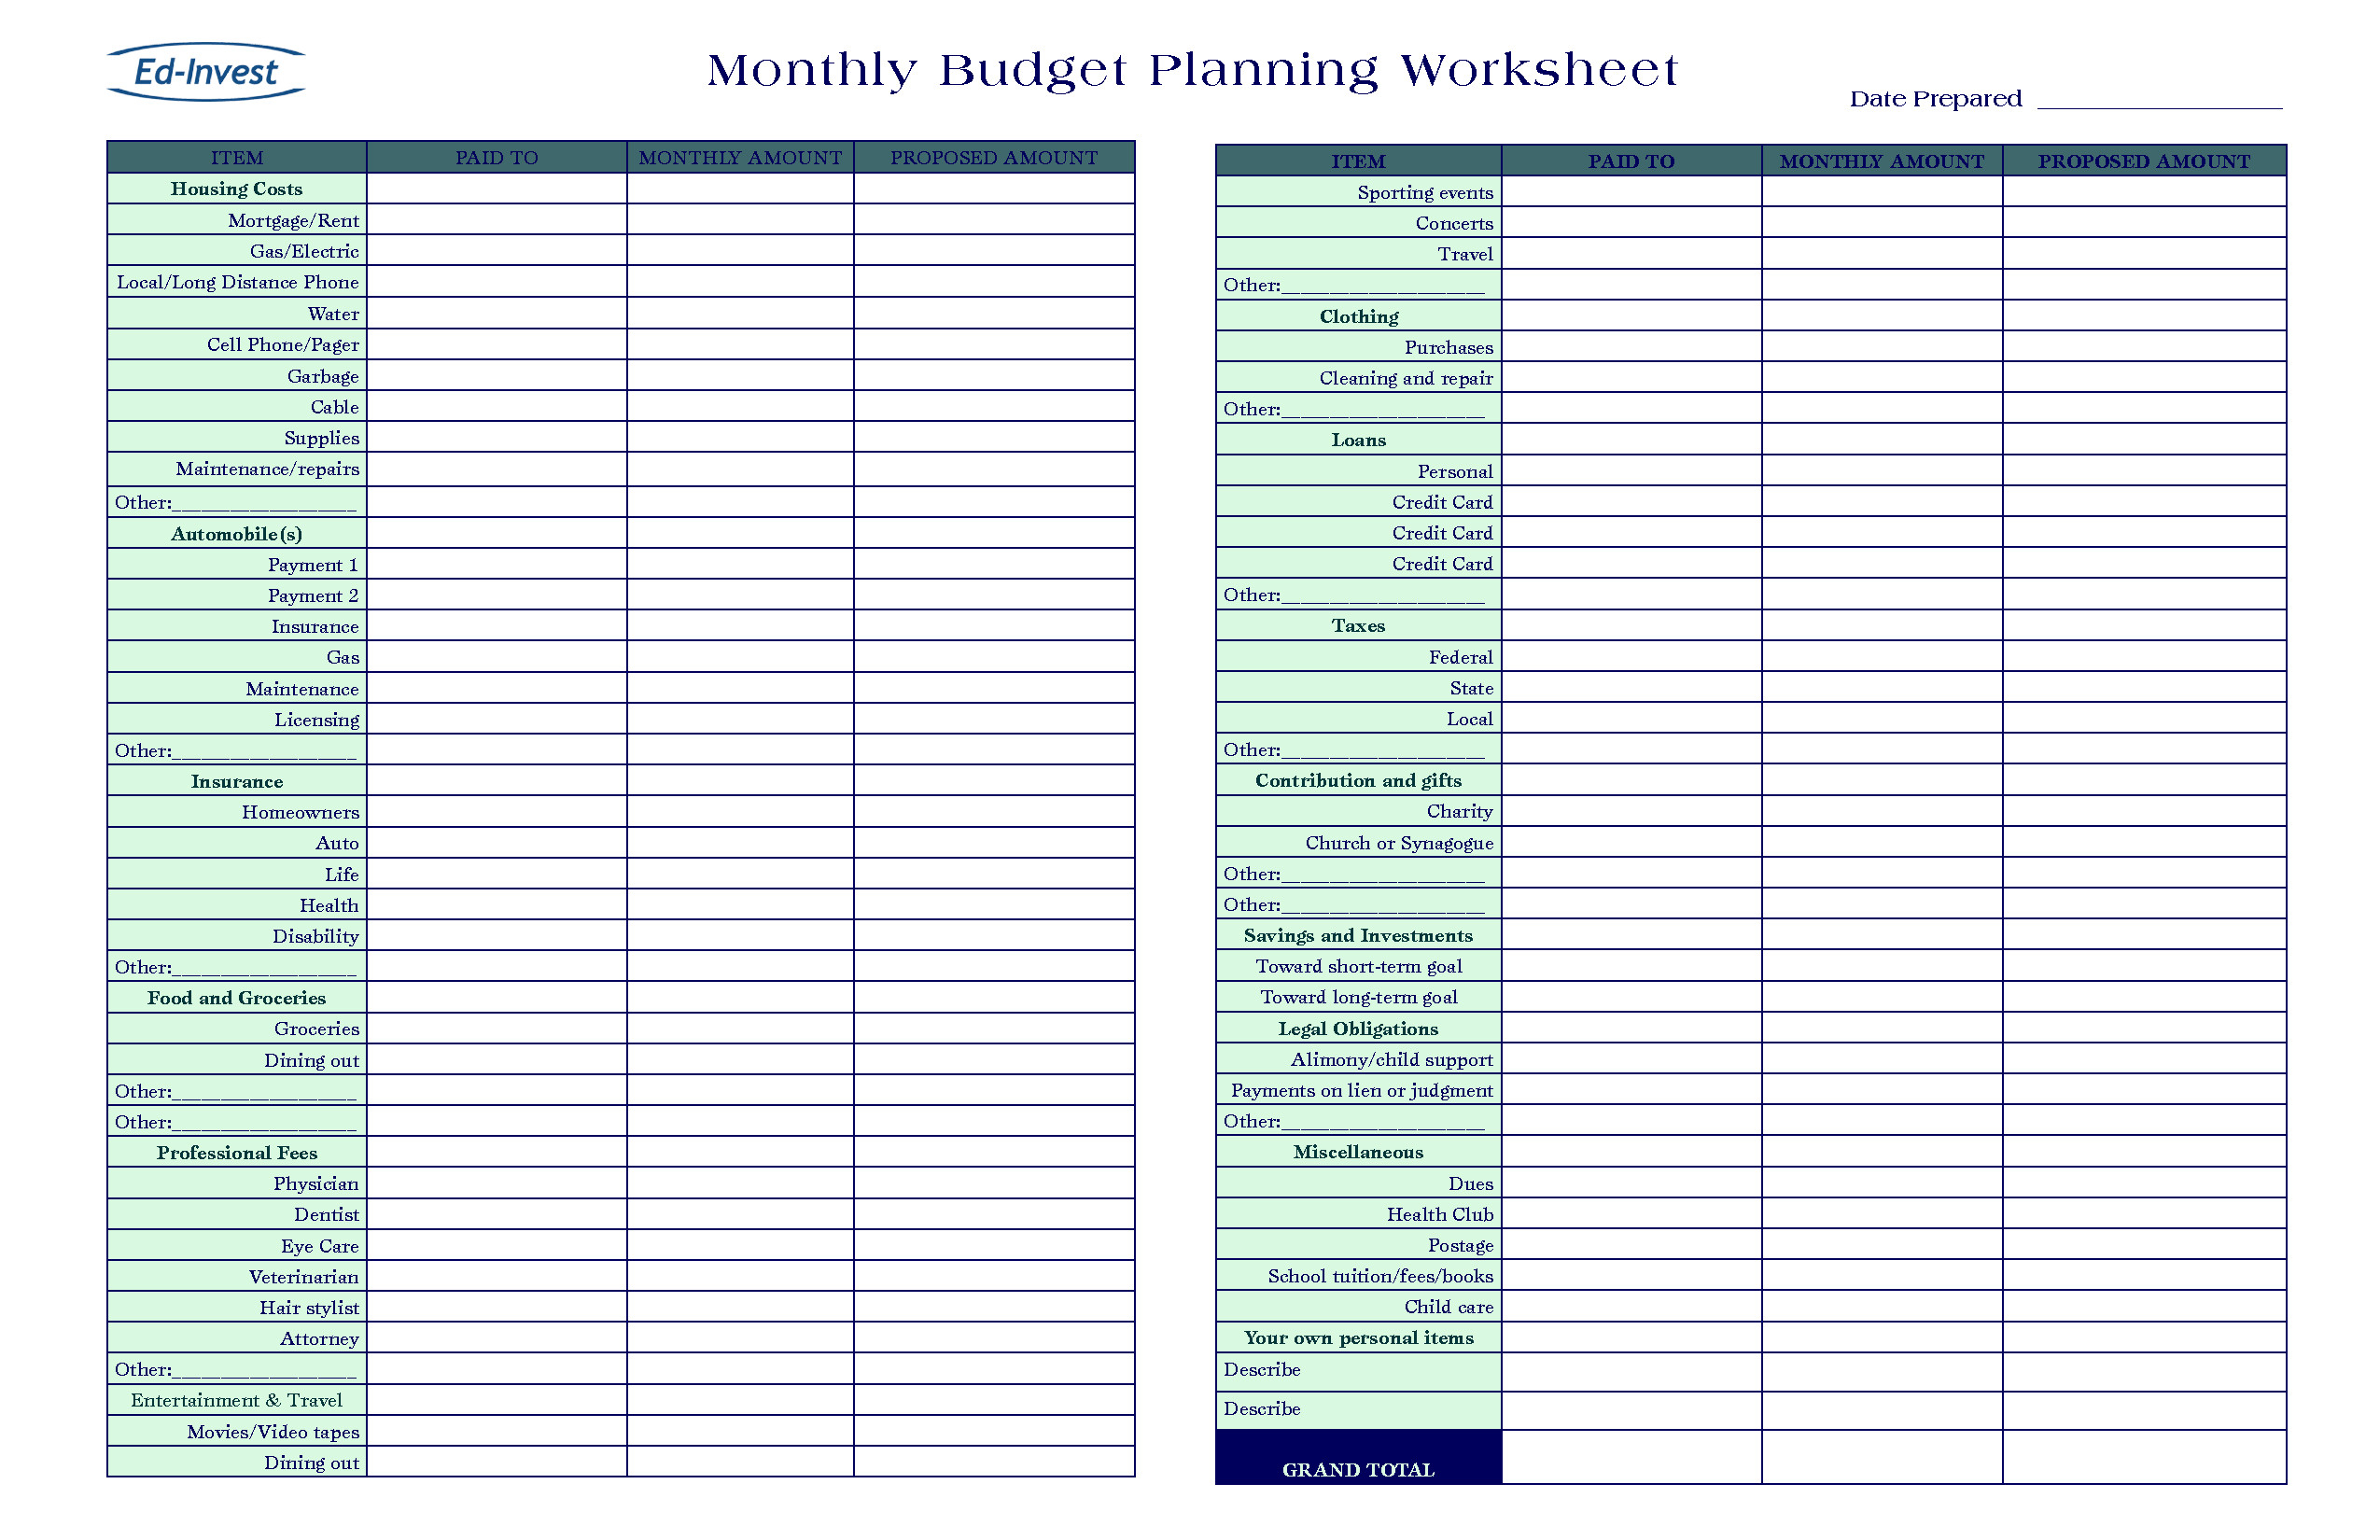 Monthly Budget Spreadsheet Google Docs Intended For Personal Budget Spreadsheet Google Docs  Q O U N With Personal